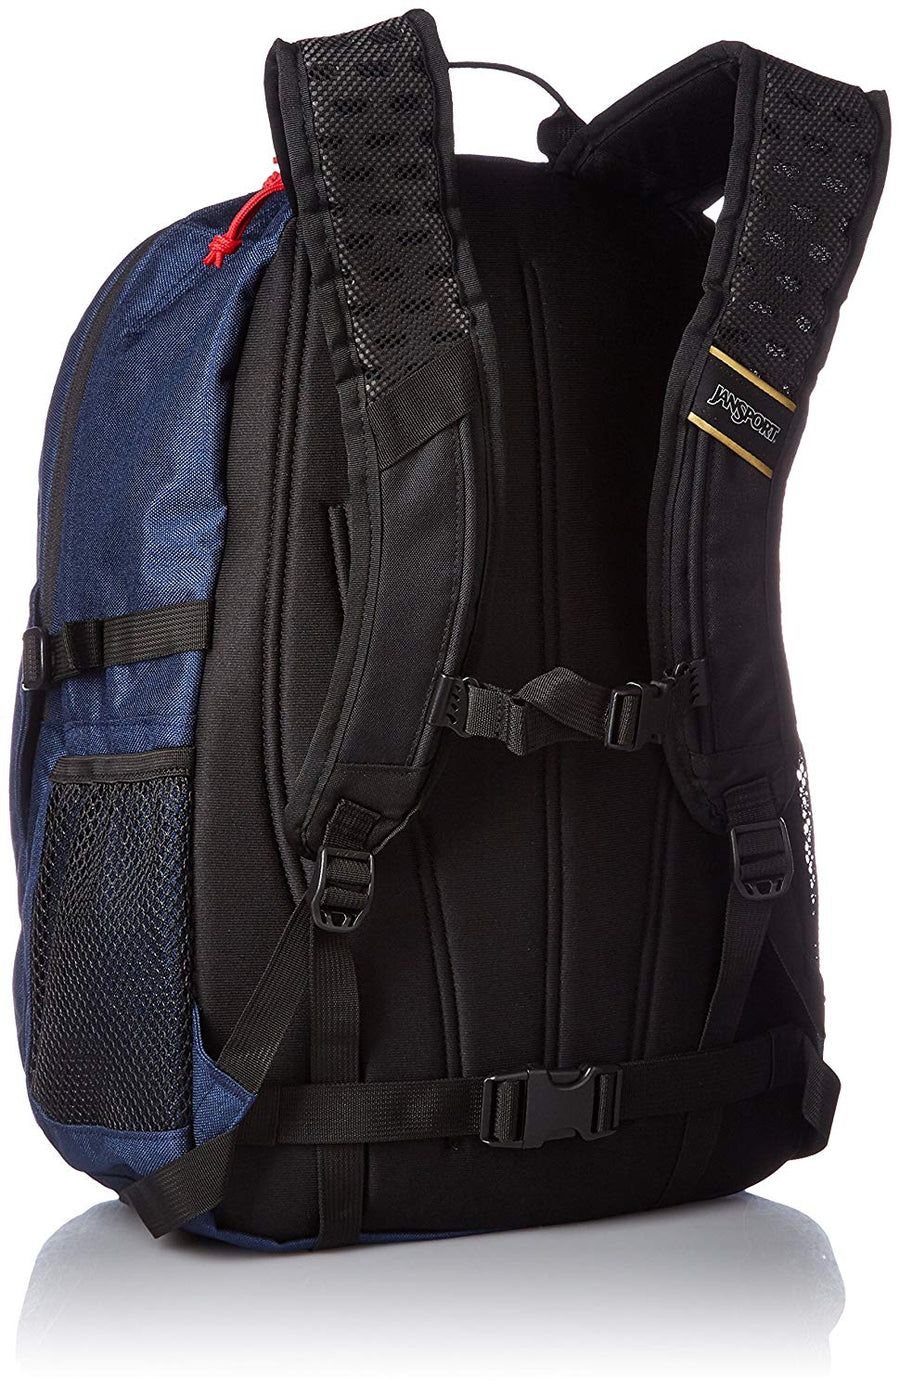 Jansport Agave 50th Anniversary Special Edition Bag - shaymartian